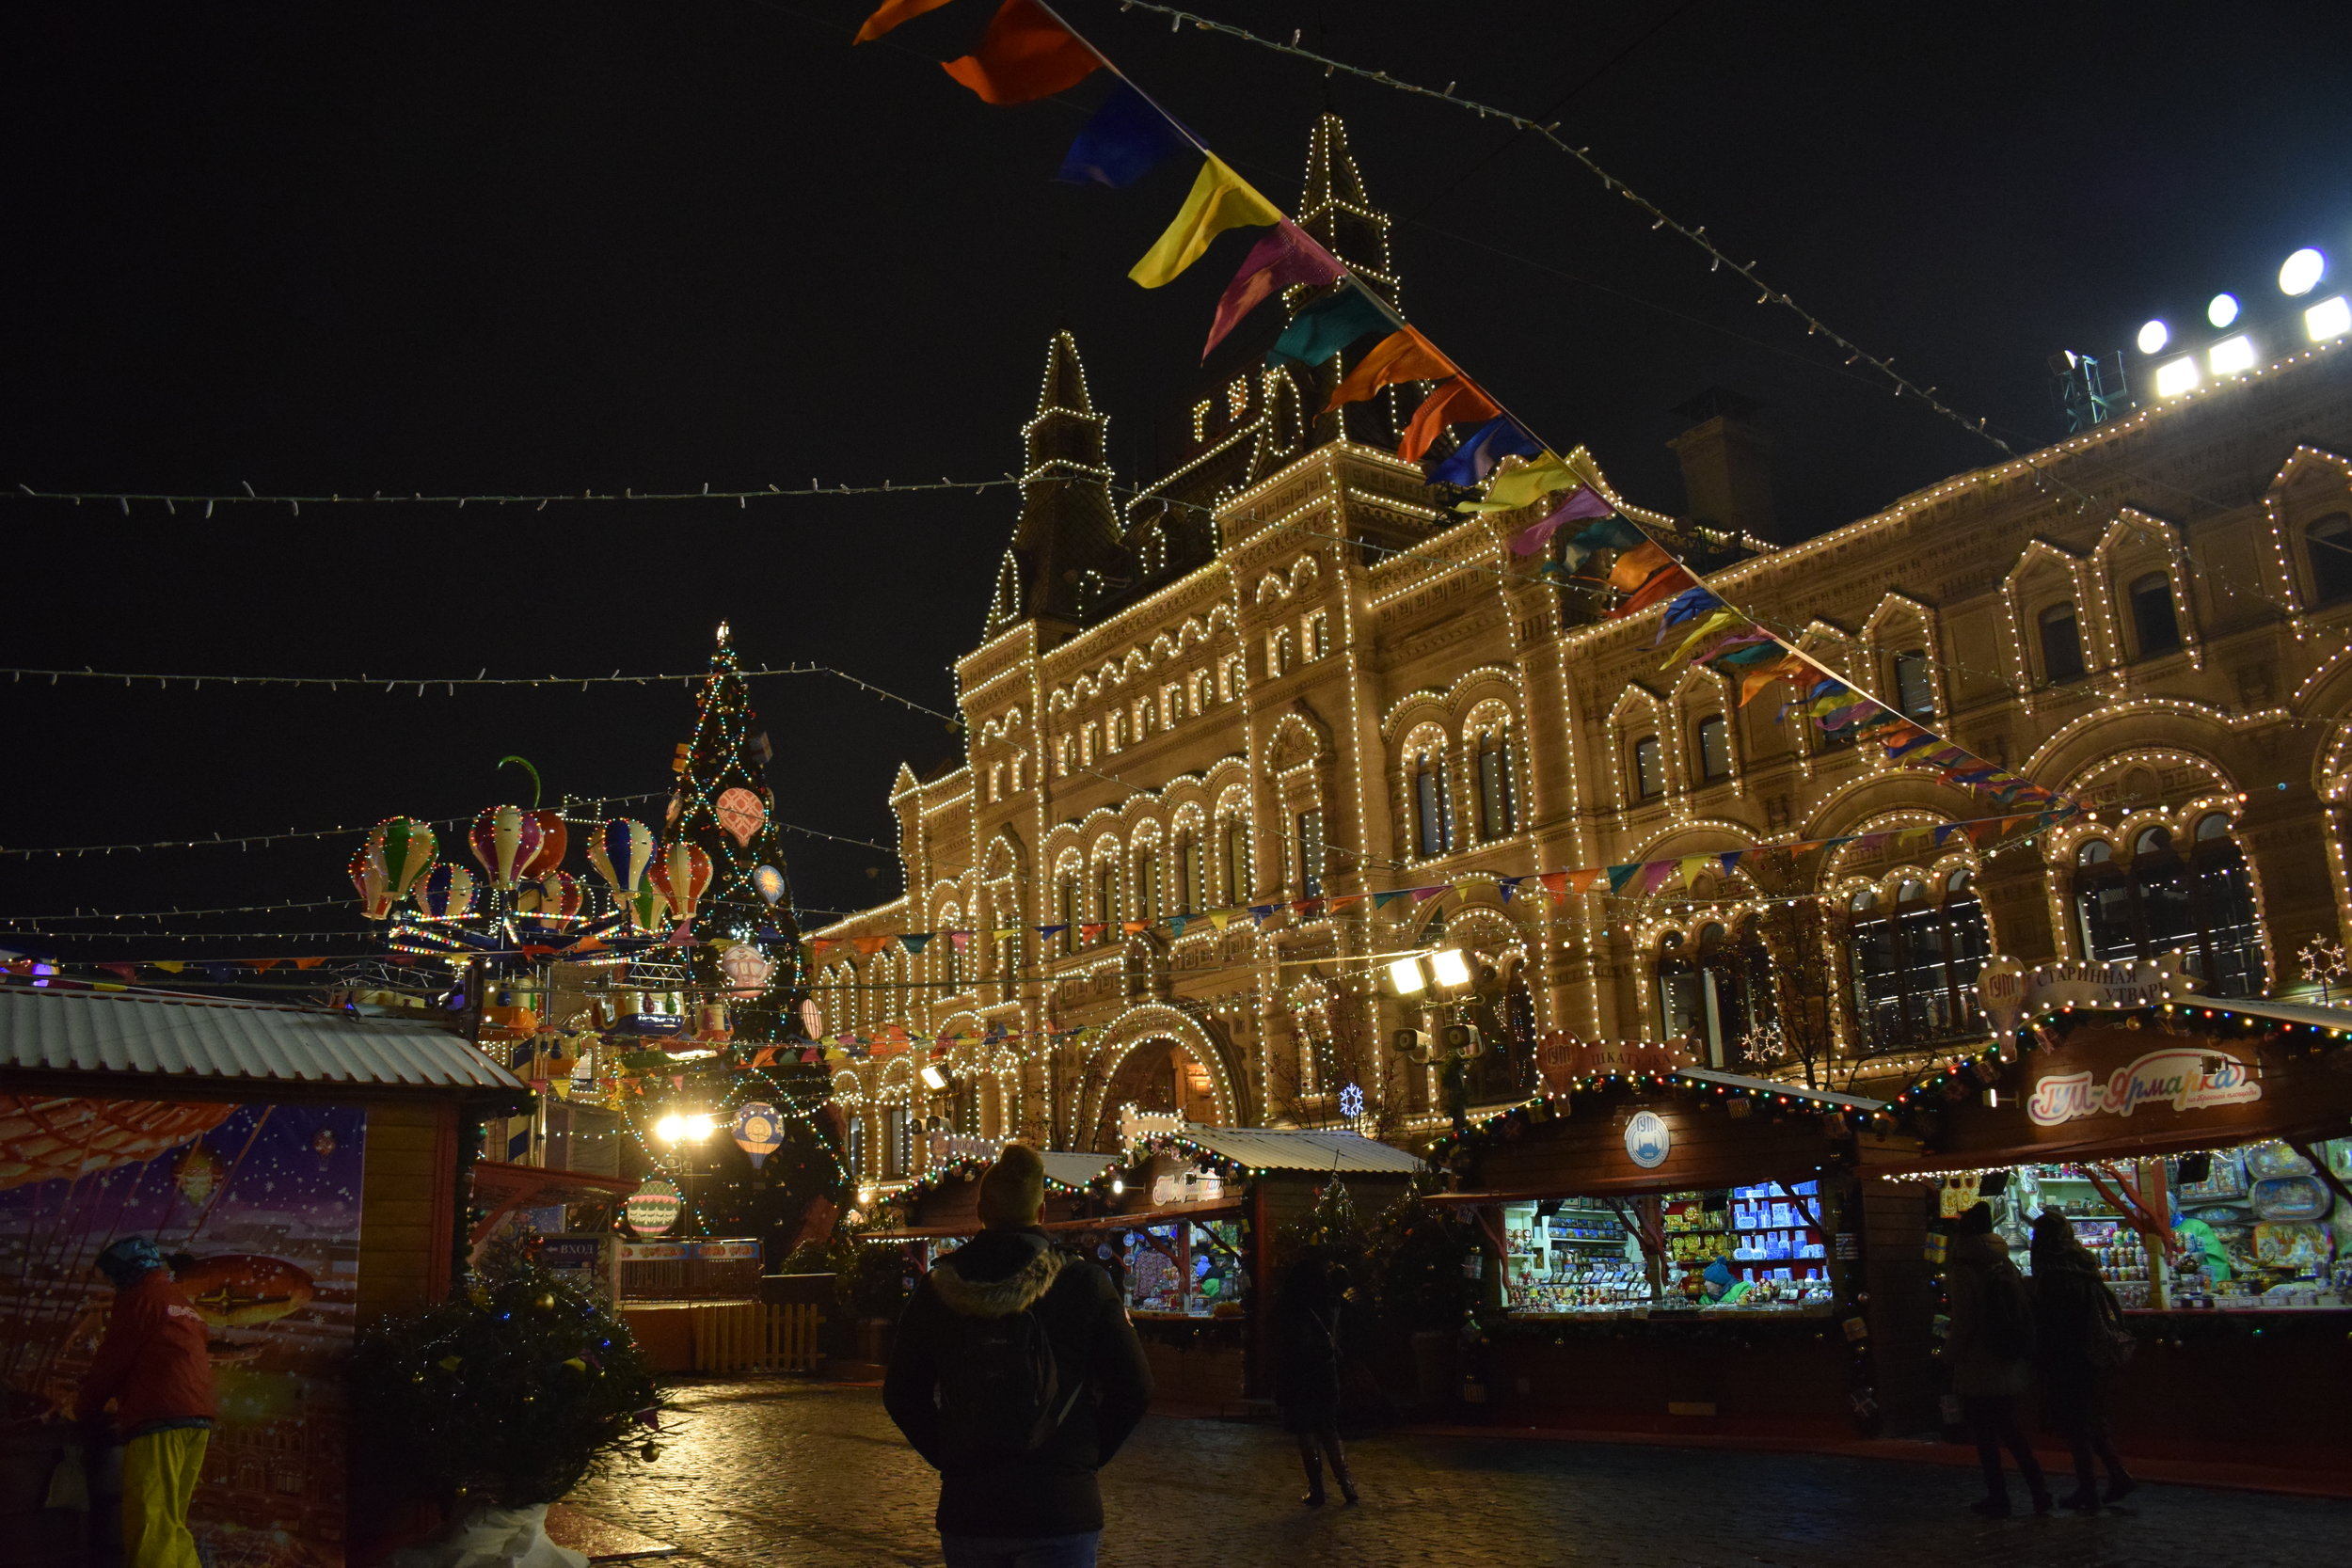 At the Red Square Christmas market in Moscow, Russia.